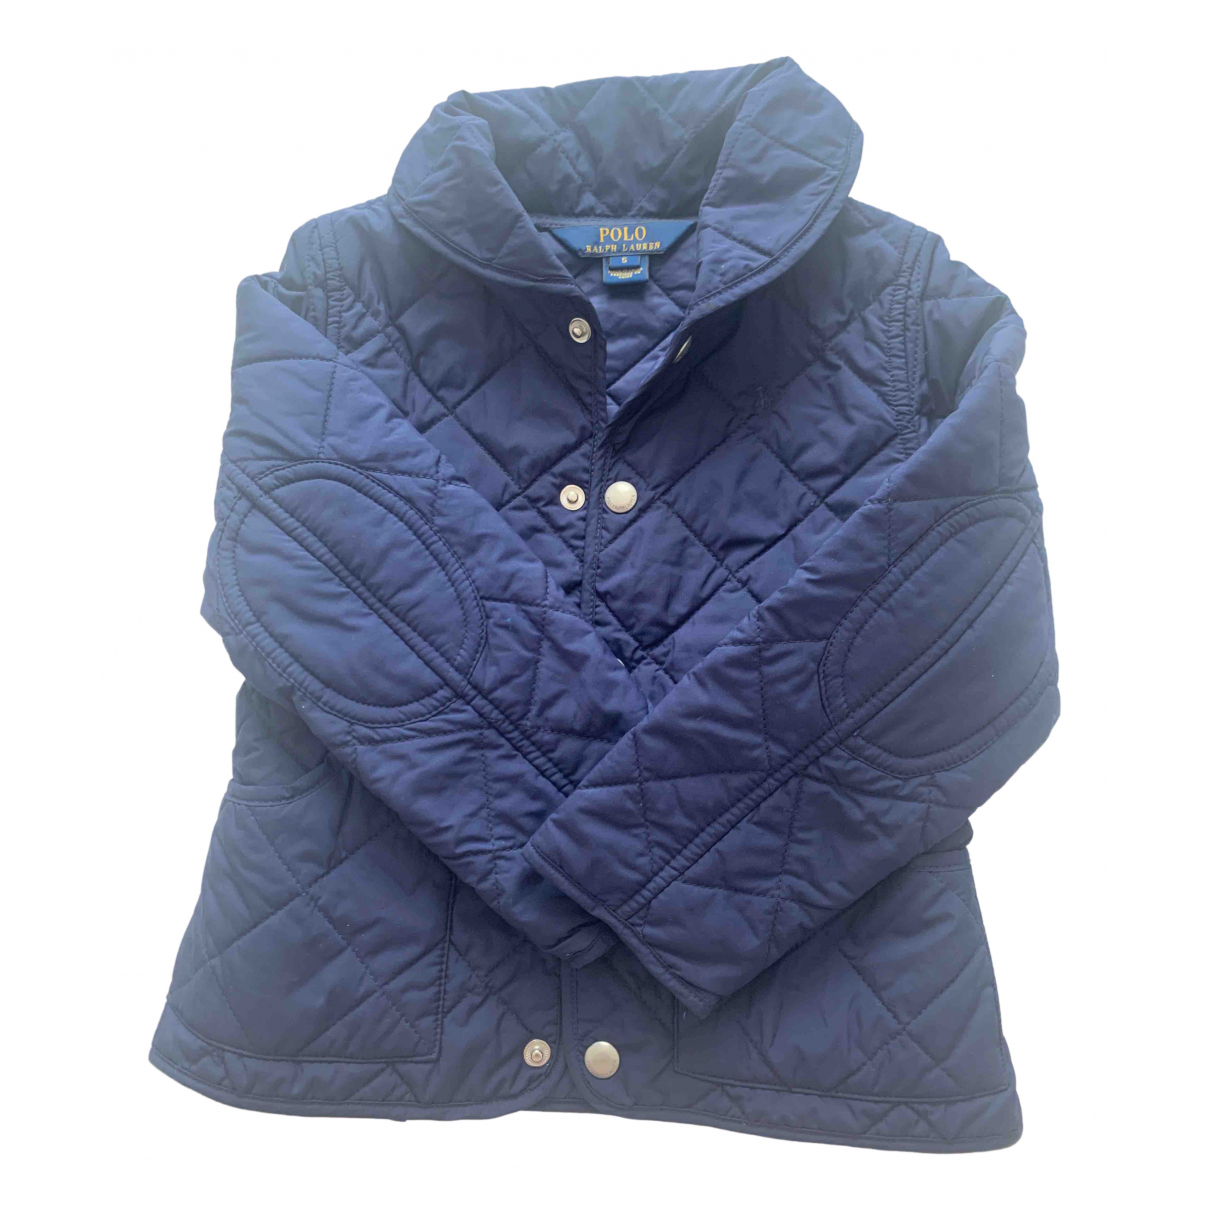 Polo Ralph Lauren \N Blue jacket & coat for Kids 5 years - up to 108cm FR